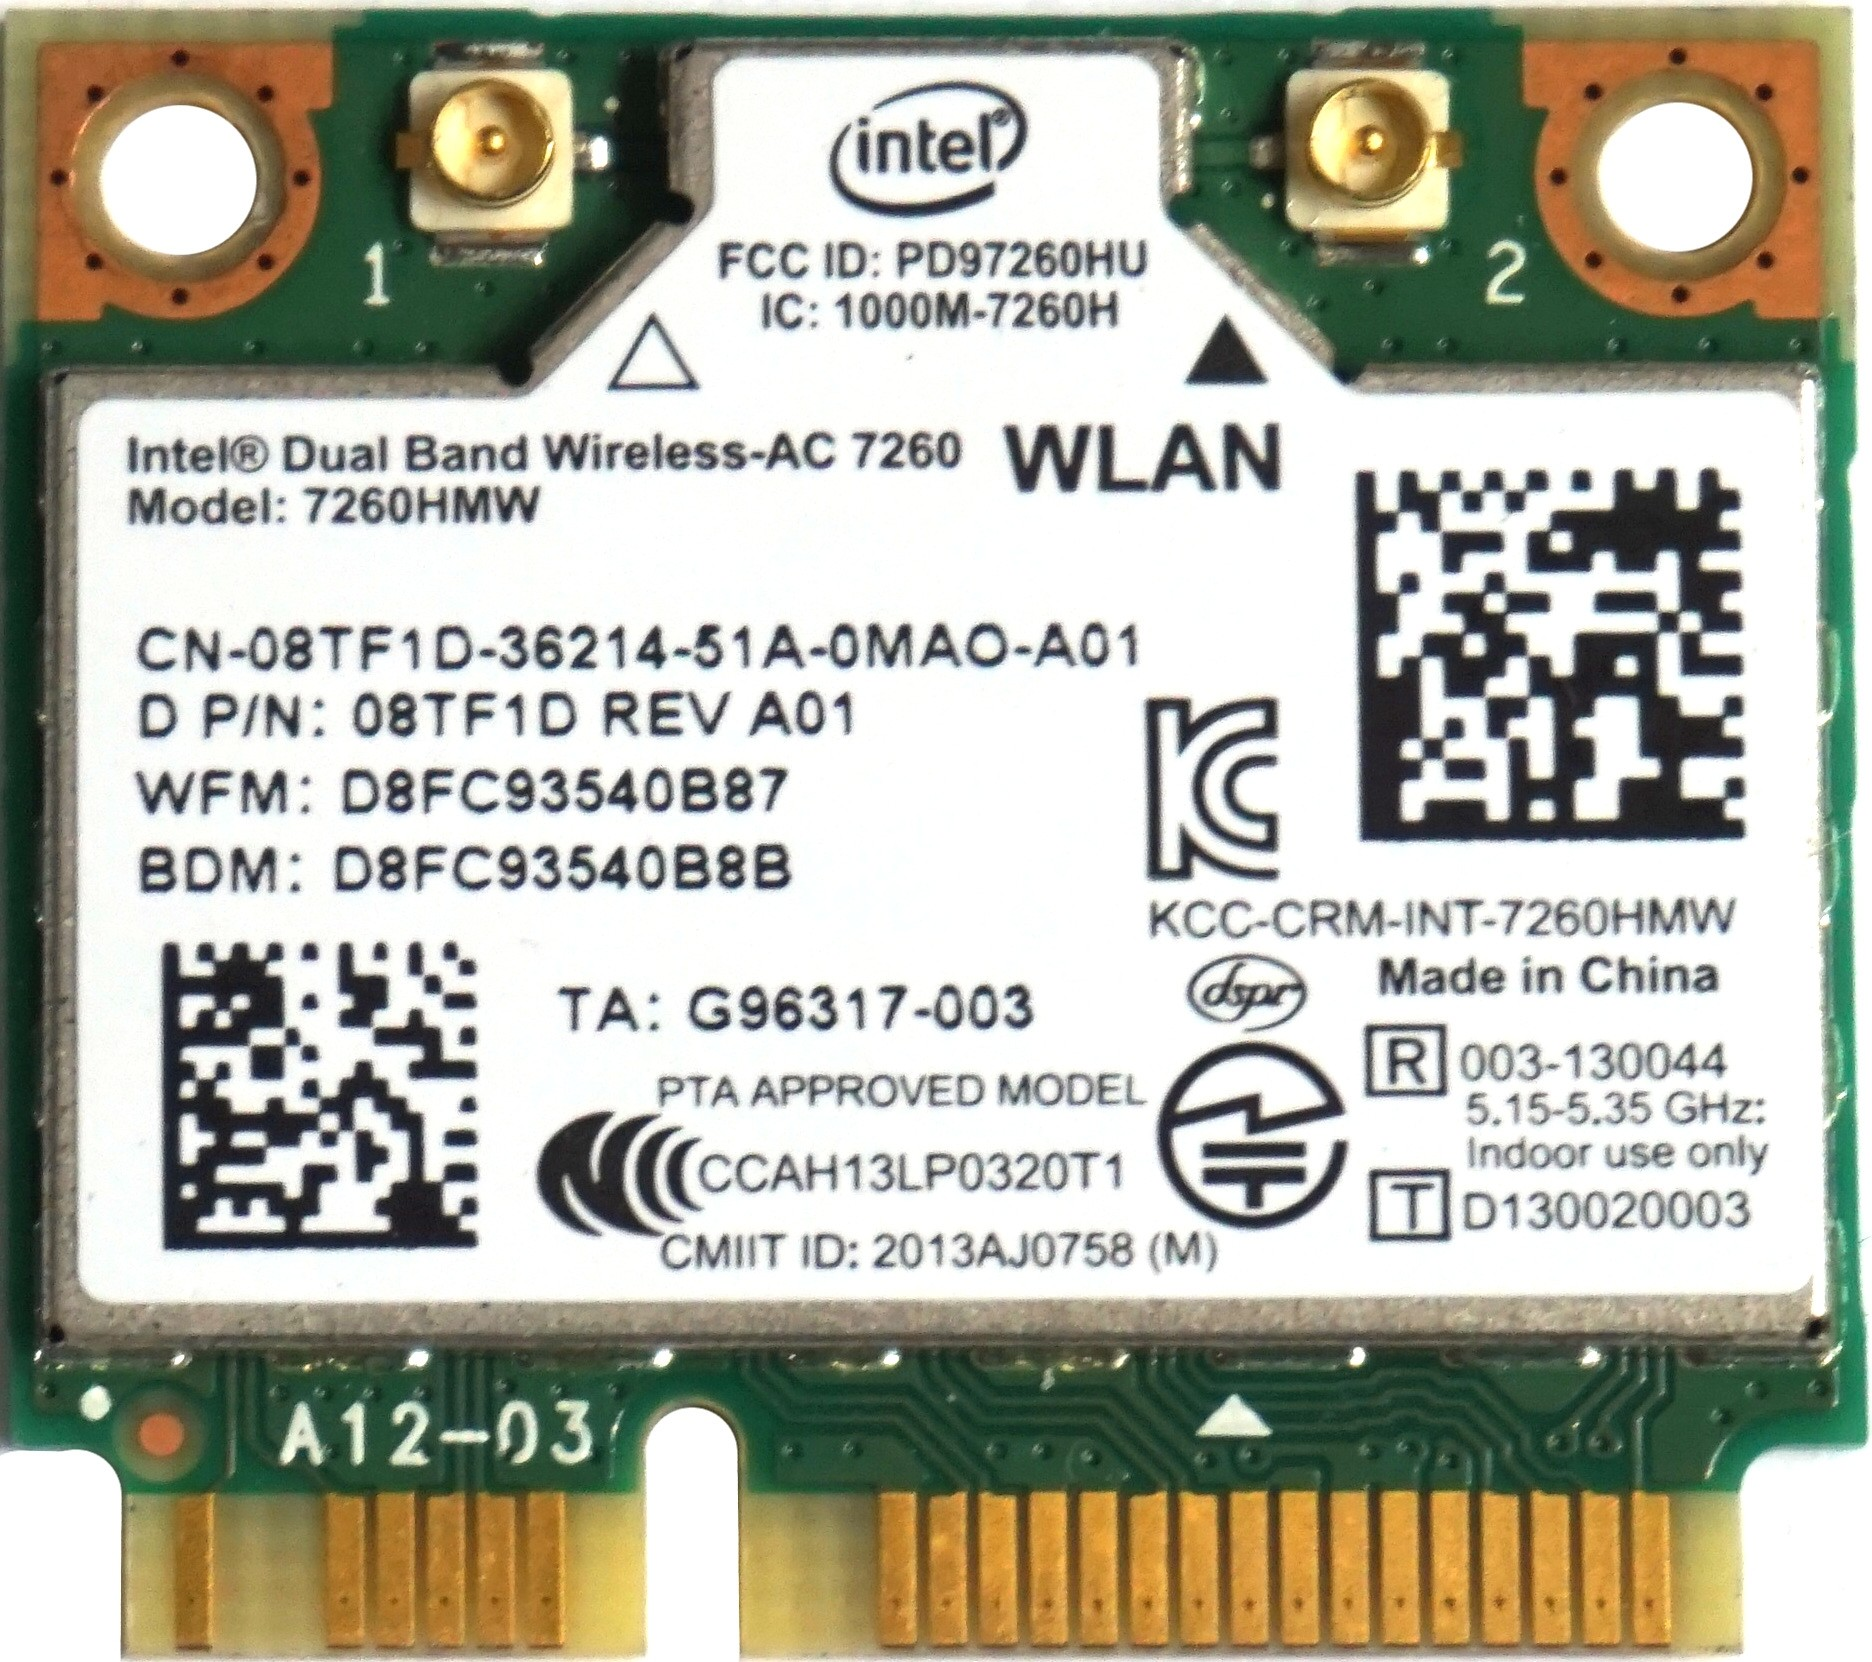 Intel Dual Band 7260HMW - Mini PCIe WiFi-AC & Bluetooth 4 0 LE Card